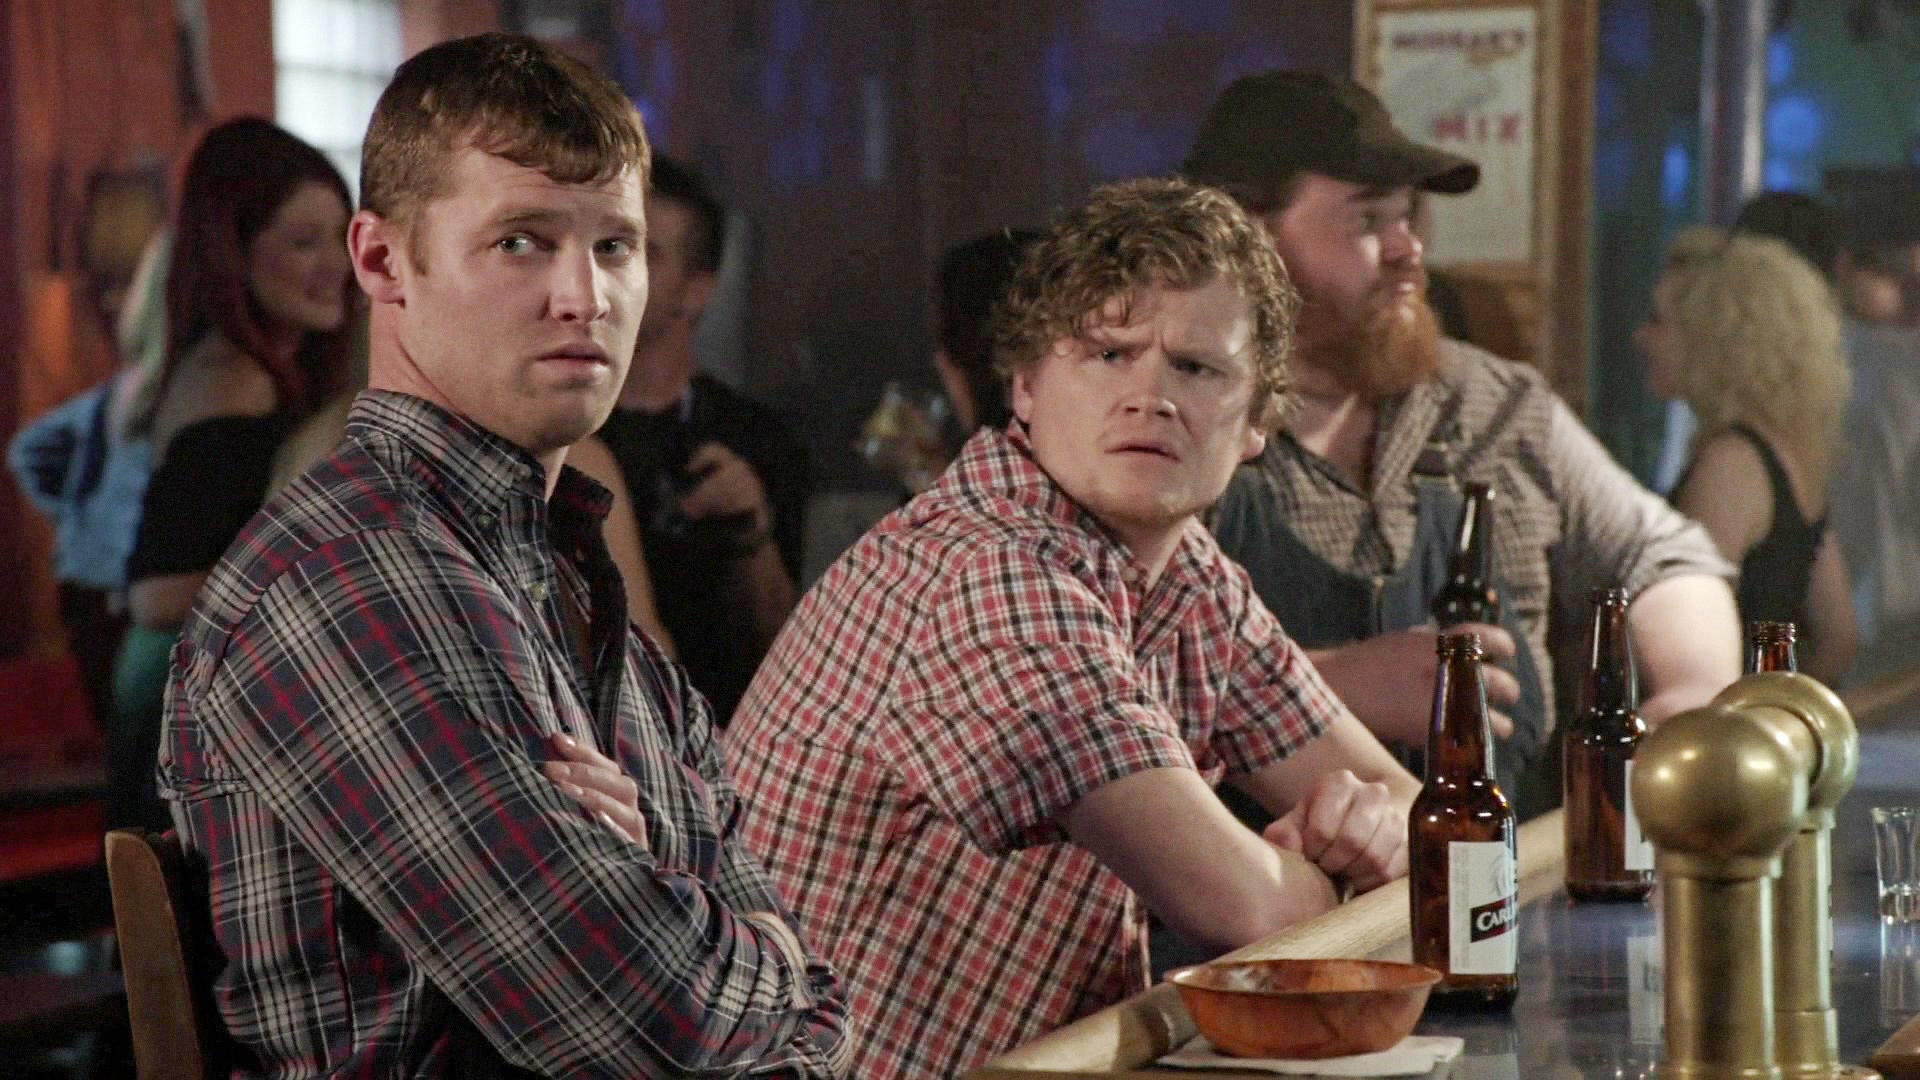 wing man wayne summary letterkenny season 1 episode 4 episode guide